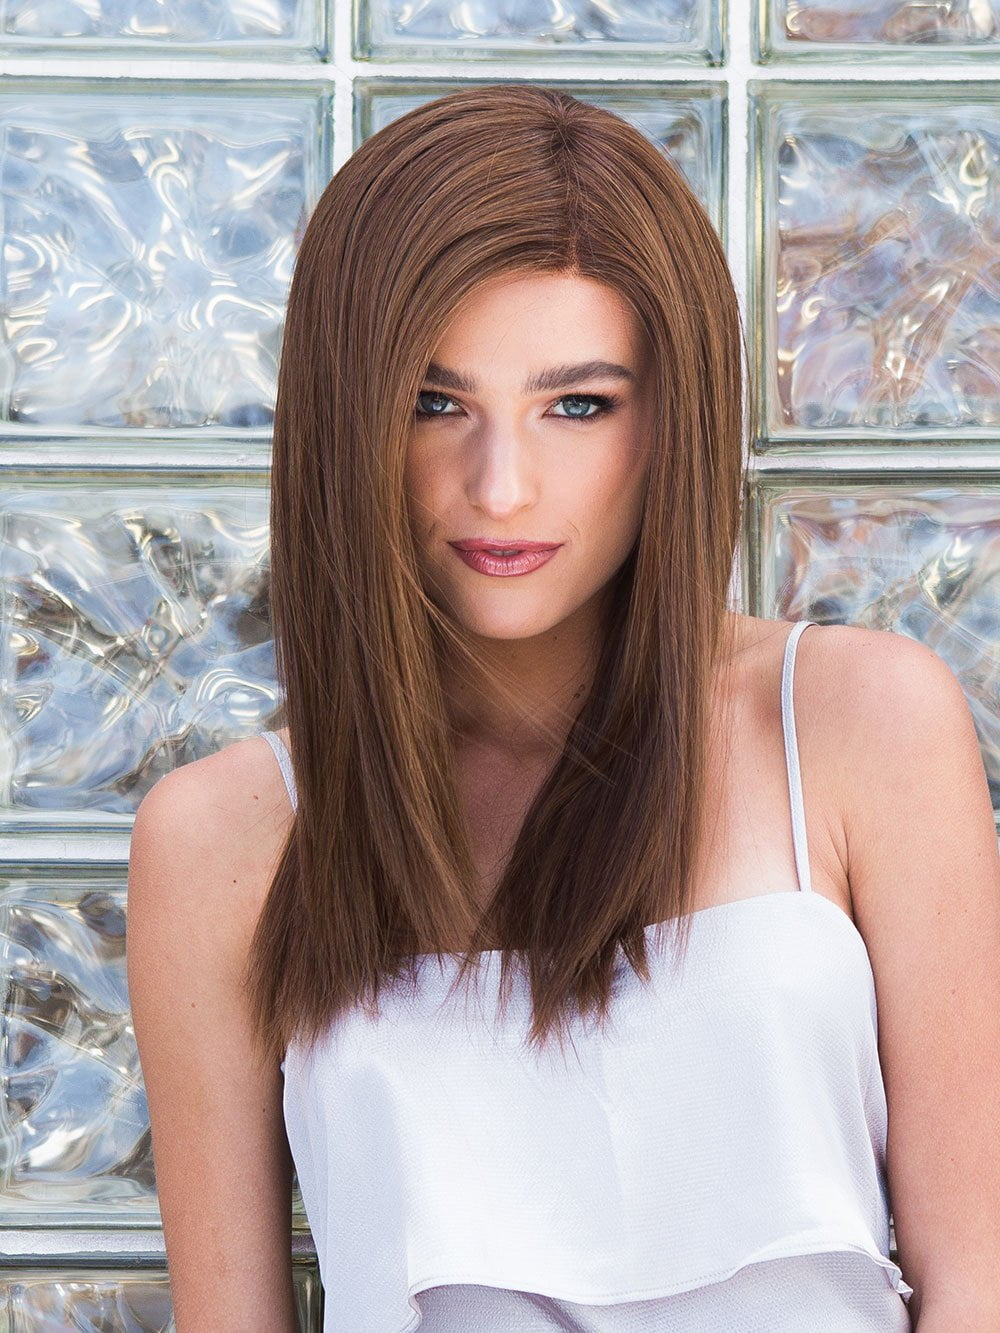 ILLUSION by Ellen Wille in CHOCOLATE MIX | Medium to Dark Brown Base with Light Reddish Brown Highlights